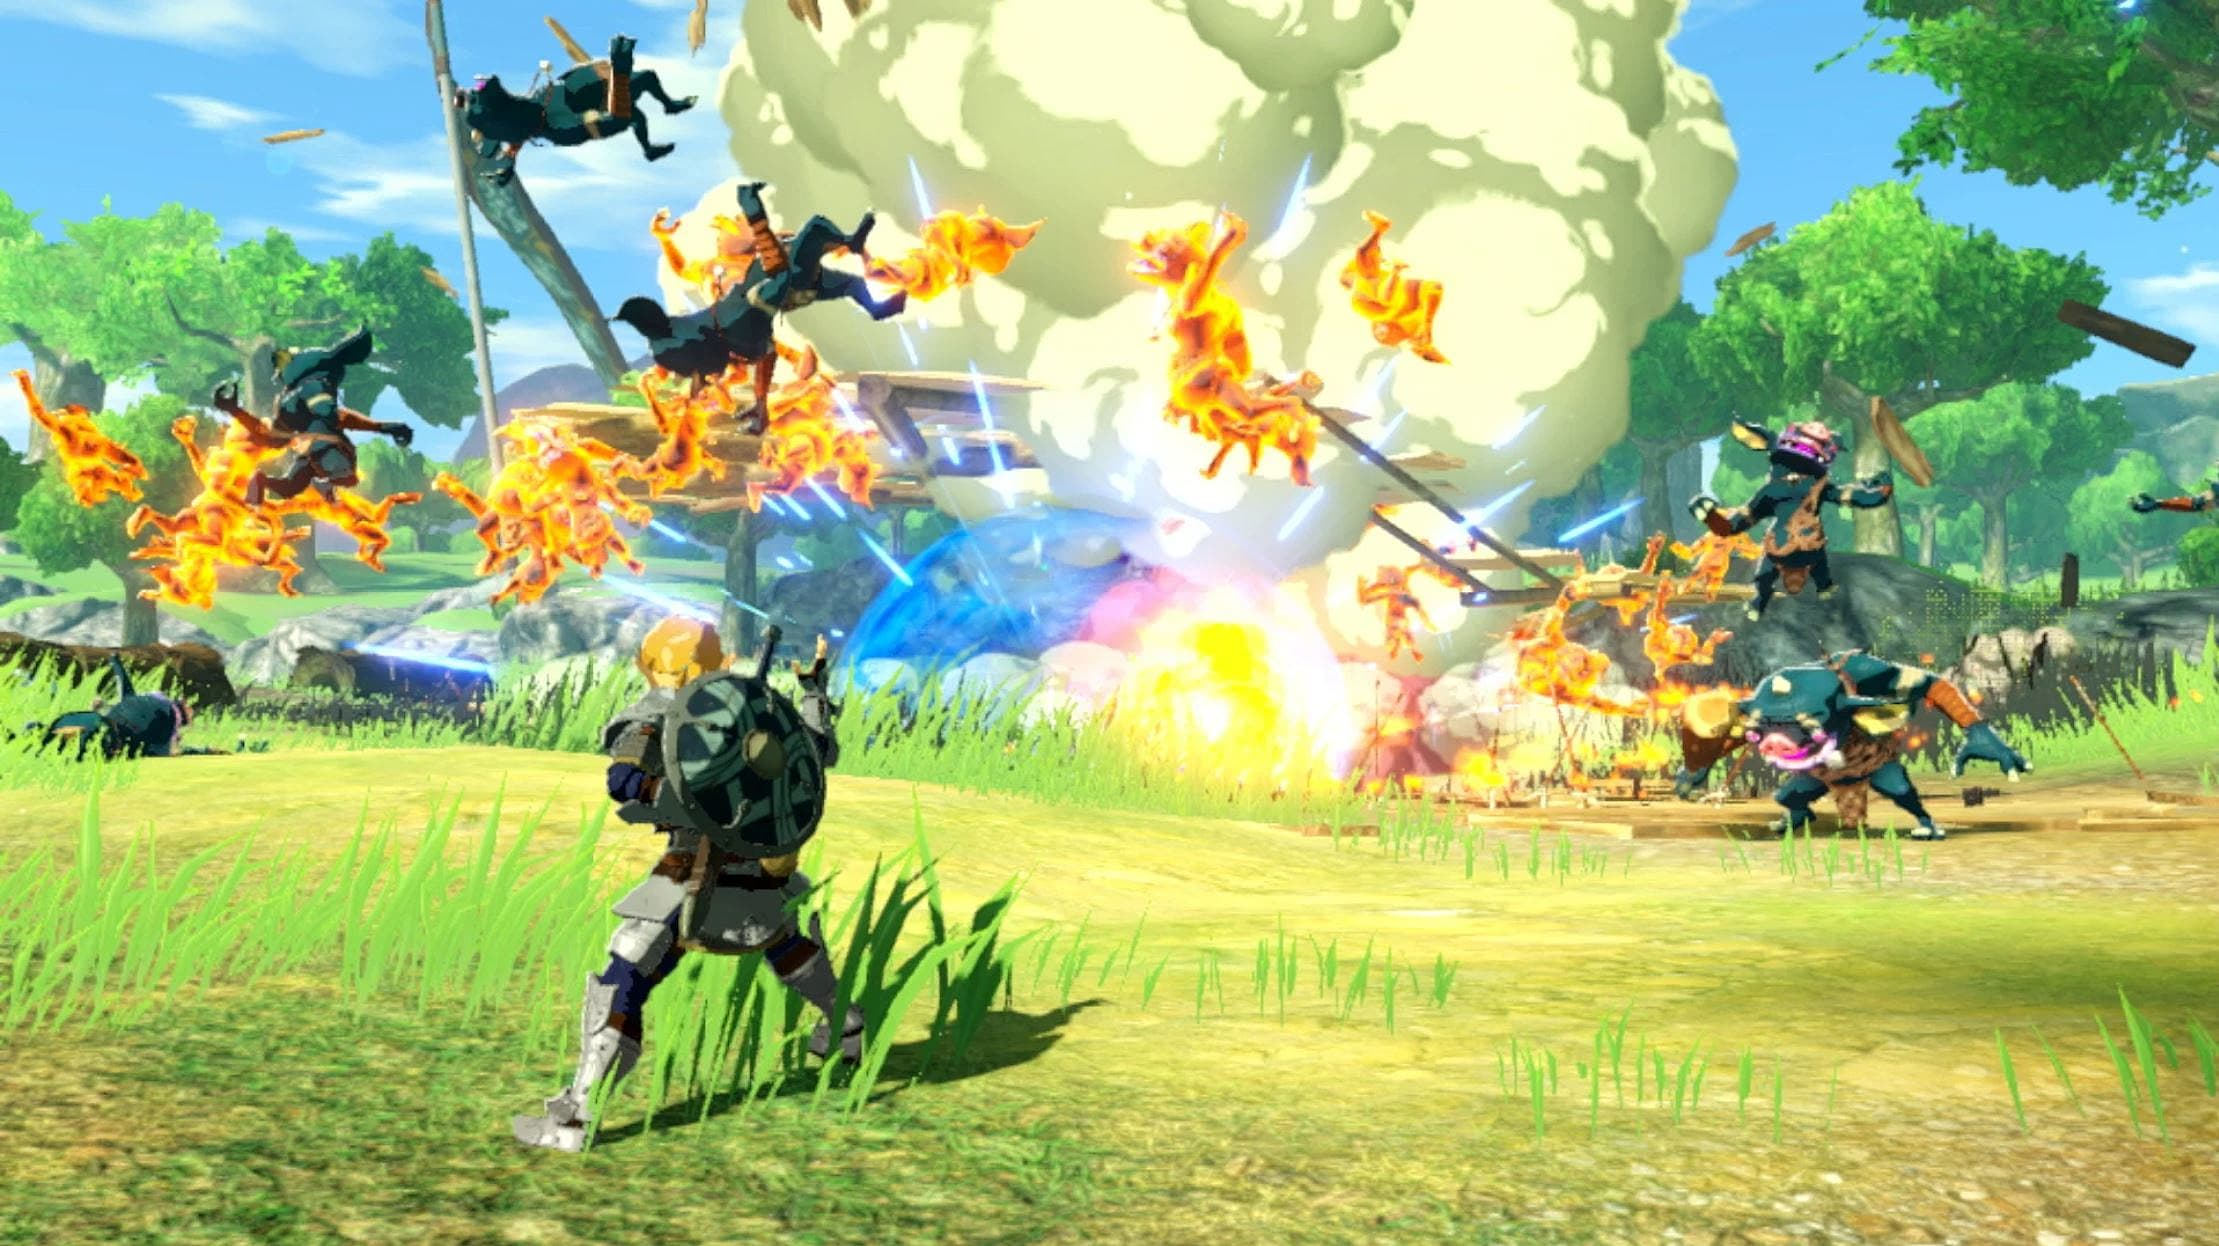 Hyrule Warriors Age Of Calamity Apple Guide How To Get More Apples Hyrule Warriors Age Of Calamity